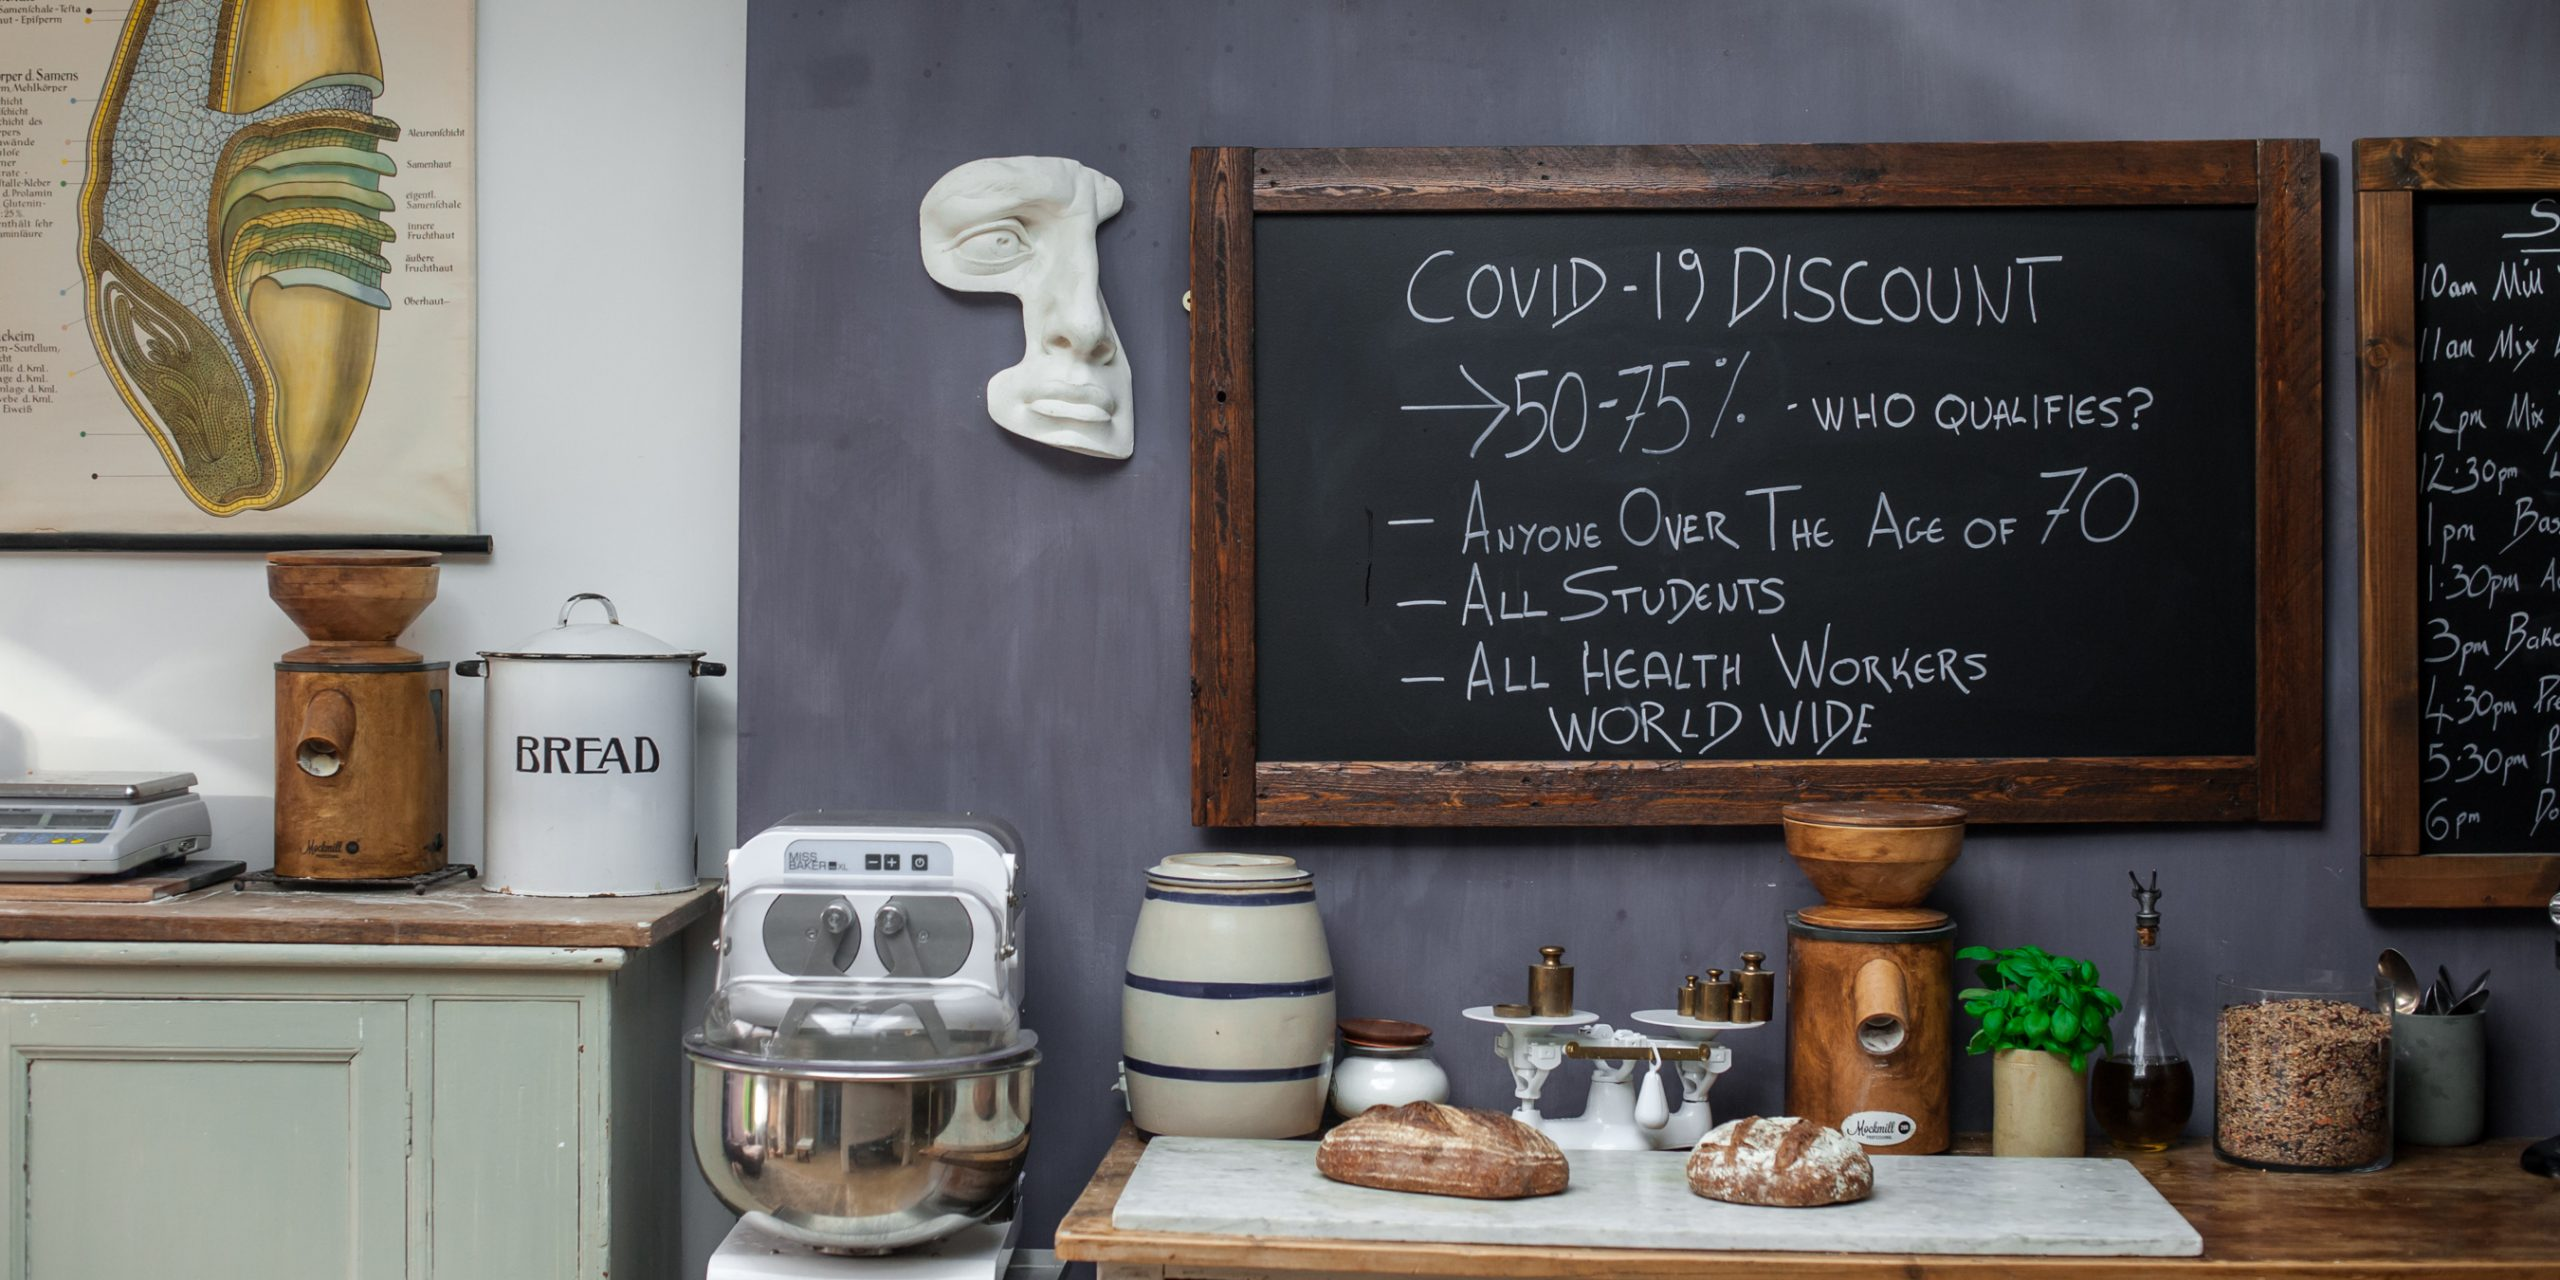 COVID- 19 Discount Code 50% and 75% off the sign-up fee